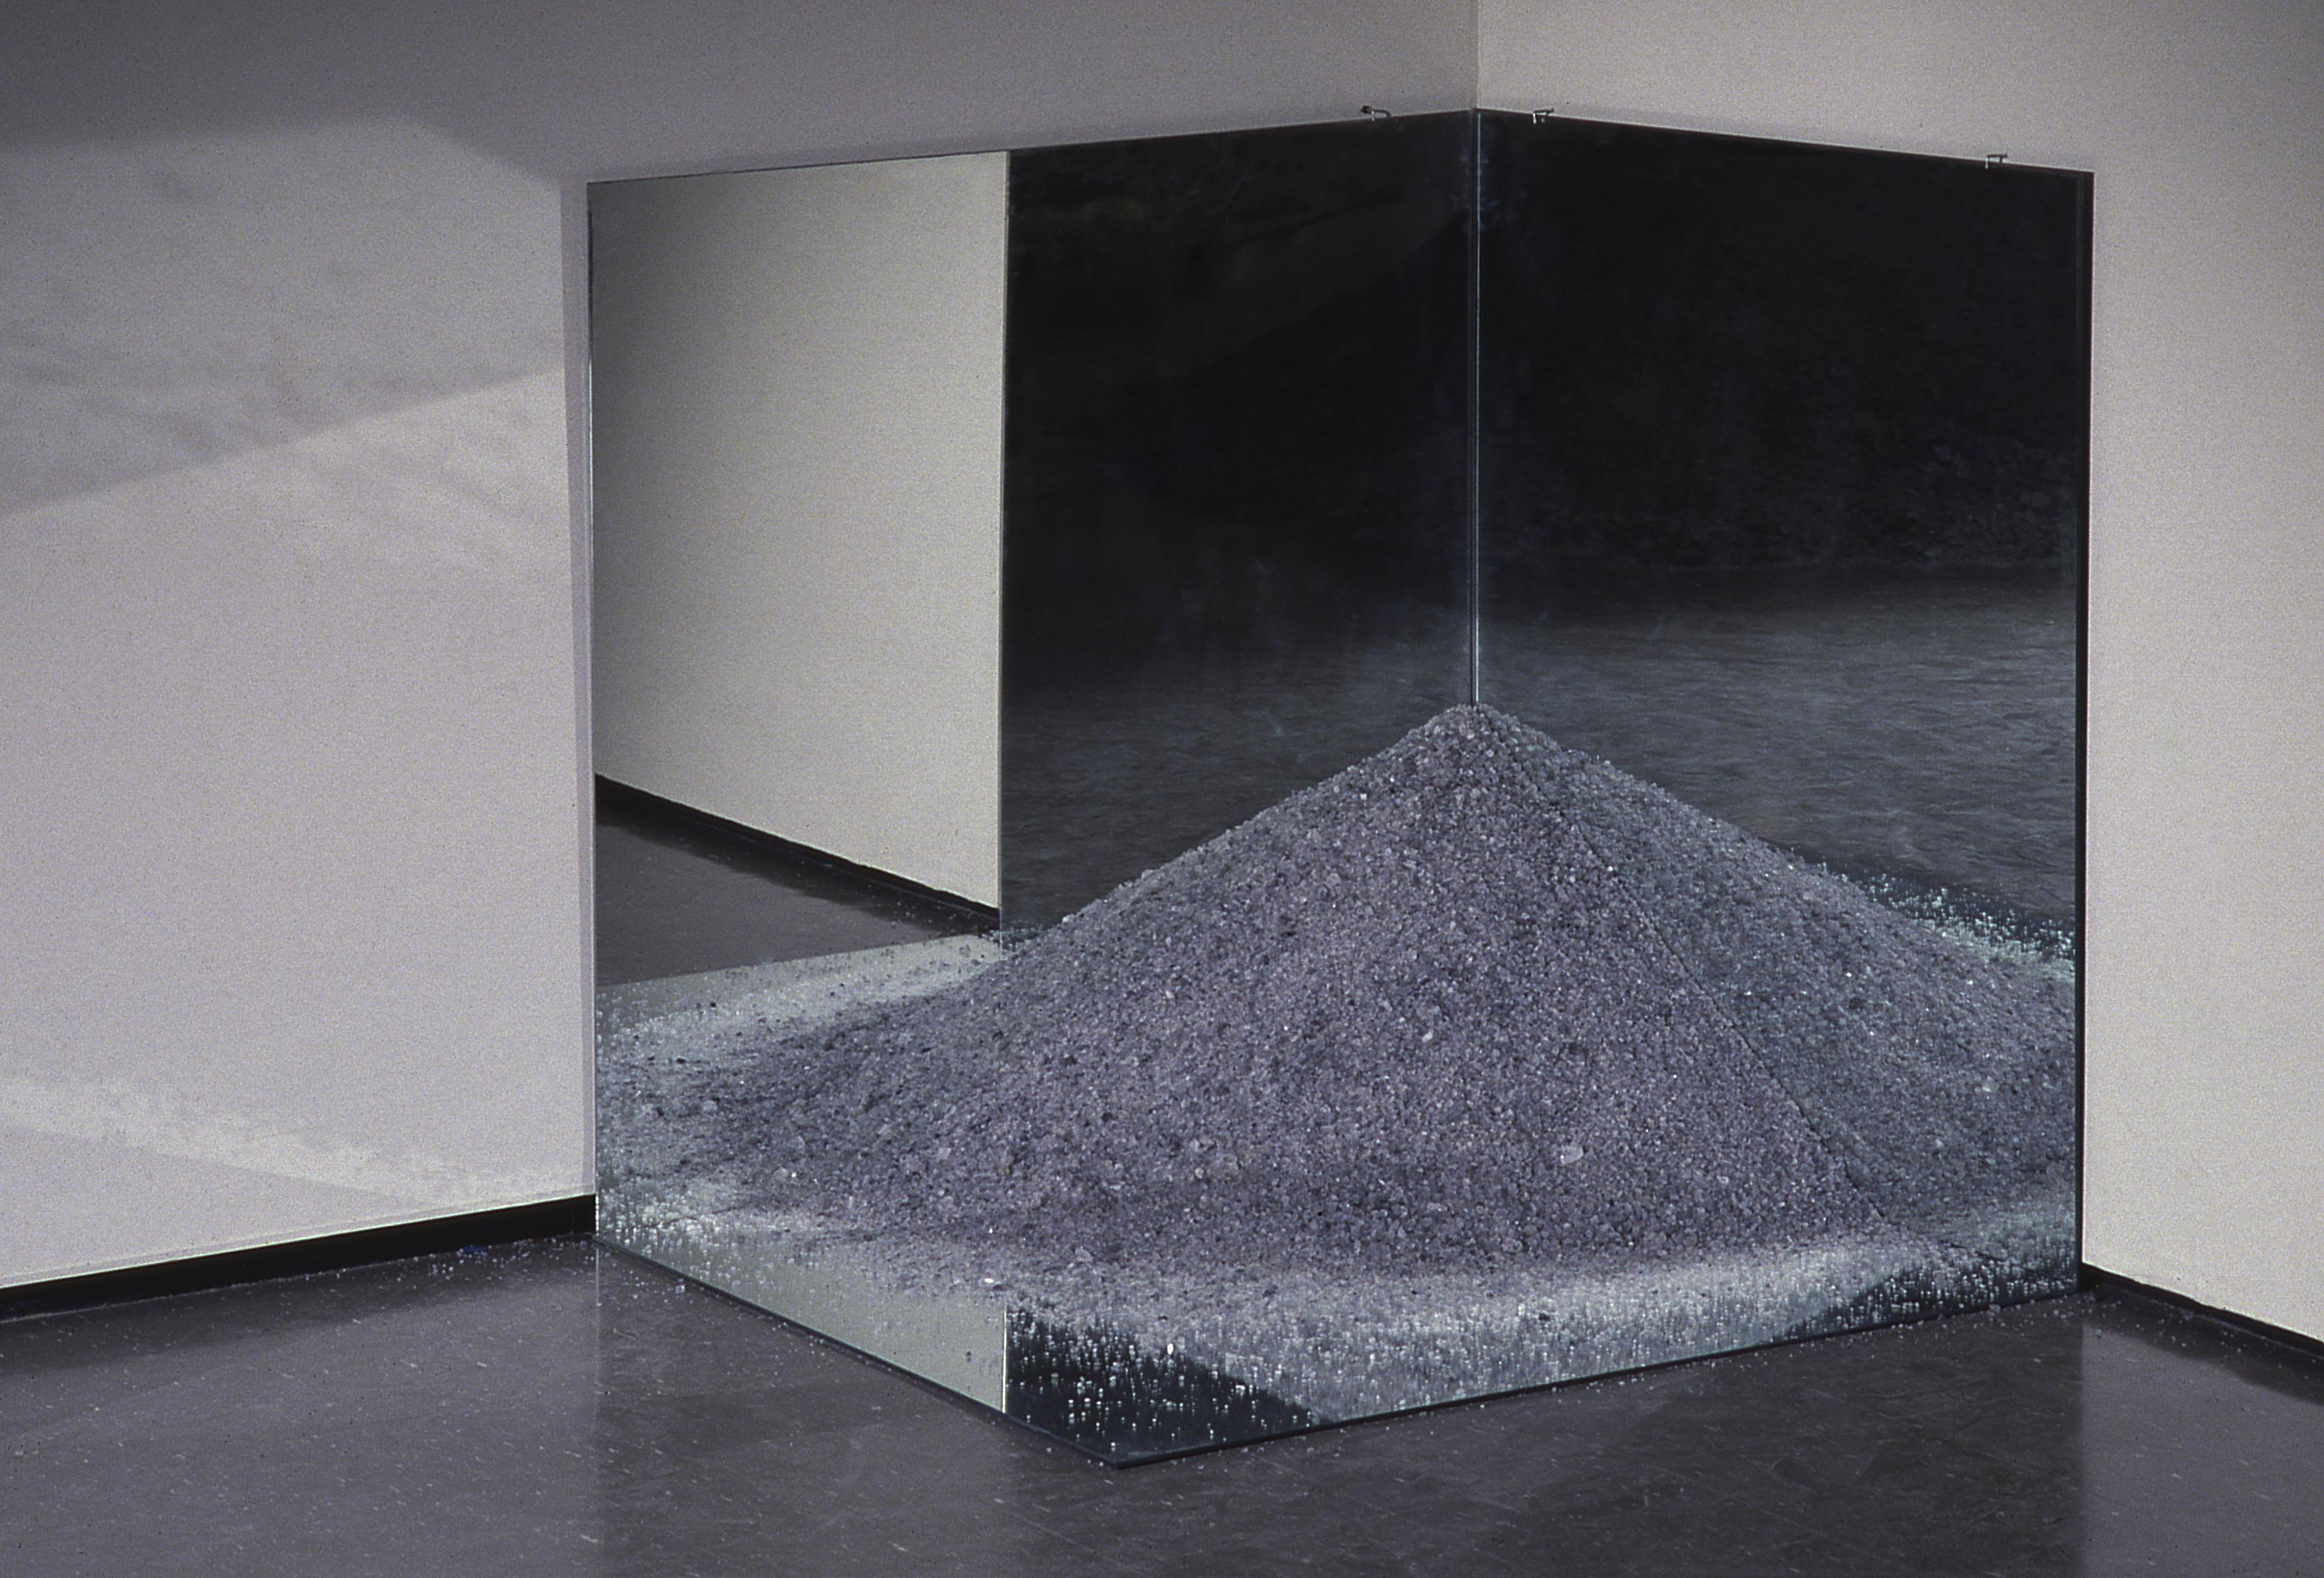 A sculpture composed of mirrors and a mound of sand appears in the corner of an art installation.